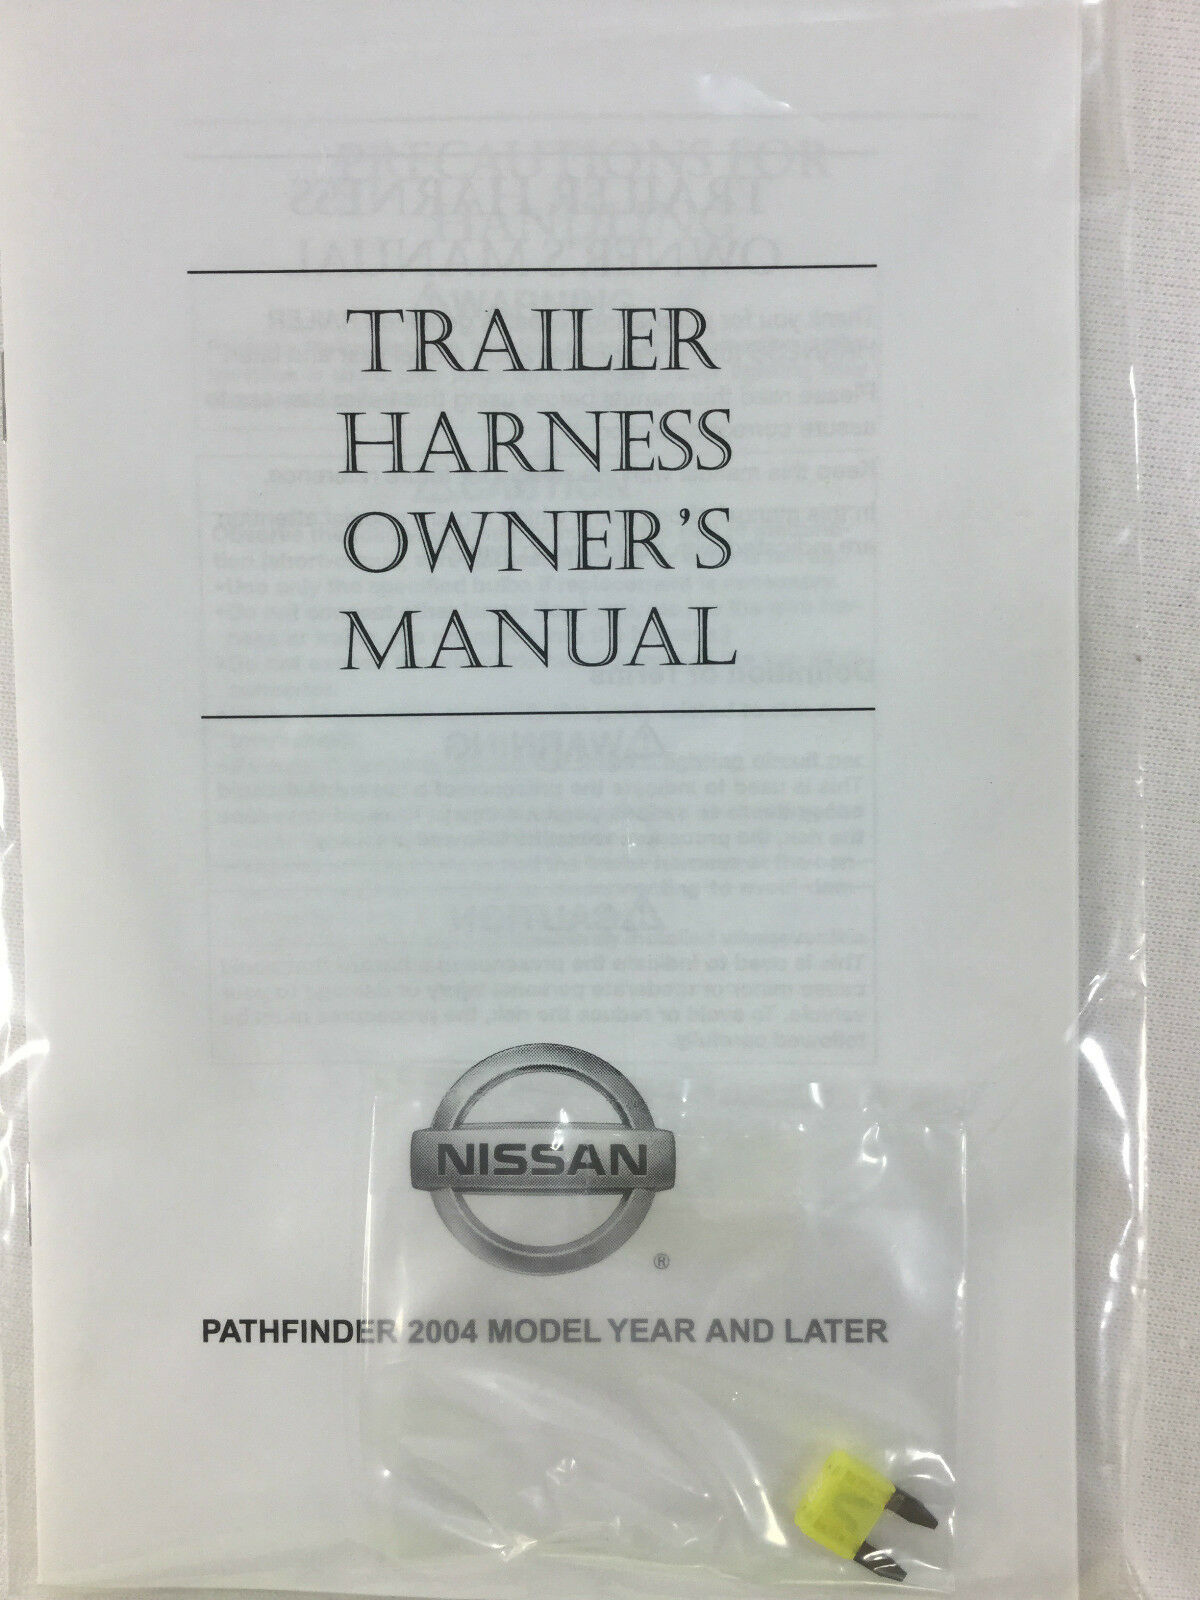 999t8 Xq000 Nissan Pathfinder Trailer Harness Kit Oem 999t8xq000 Ebay 2013 Tow Wiring Norton Secured Powered By Verisign